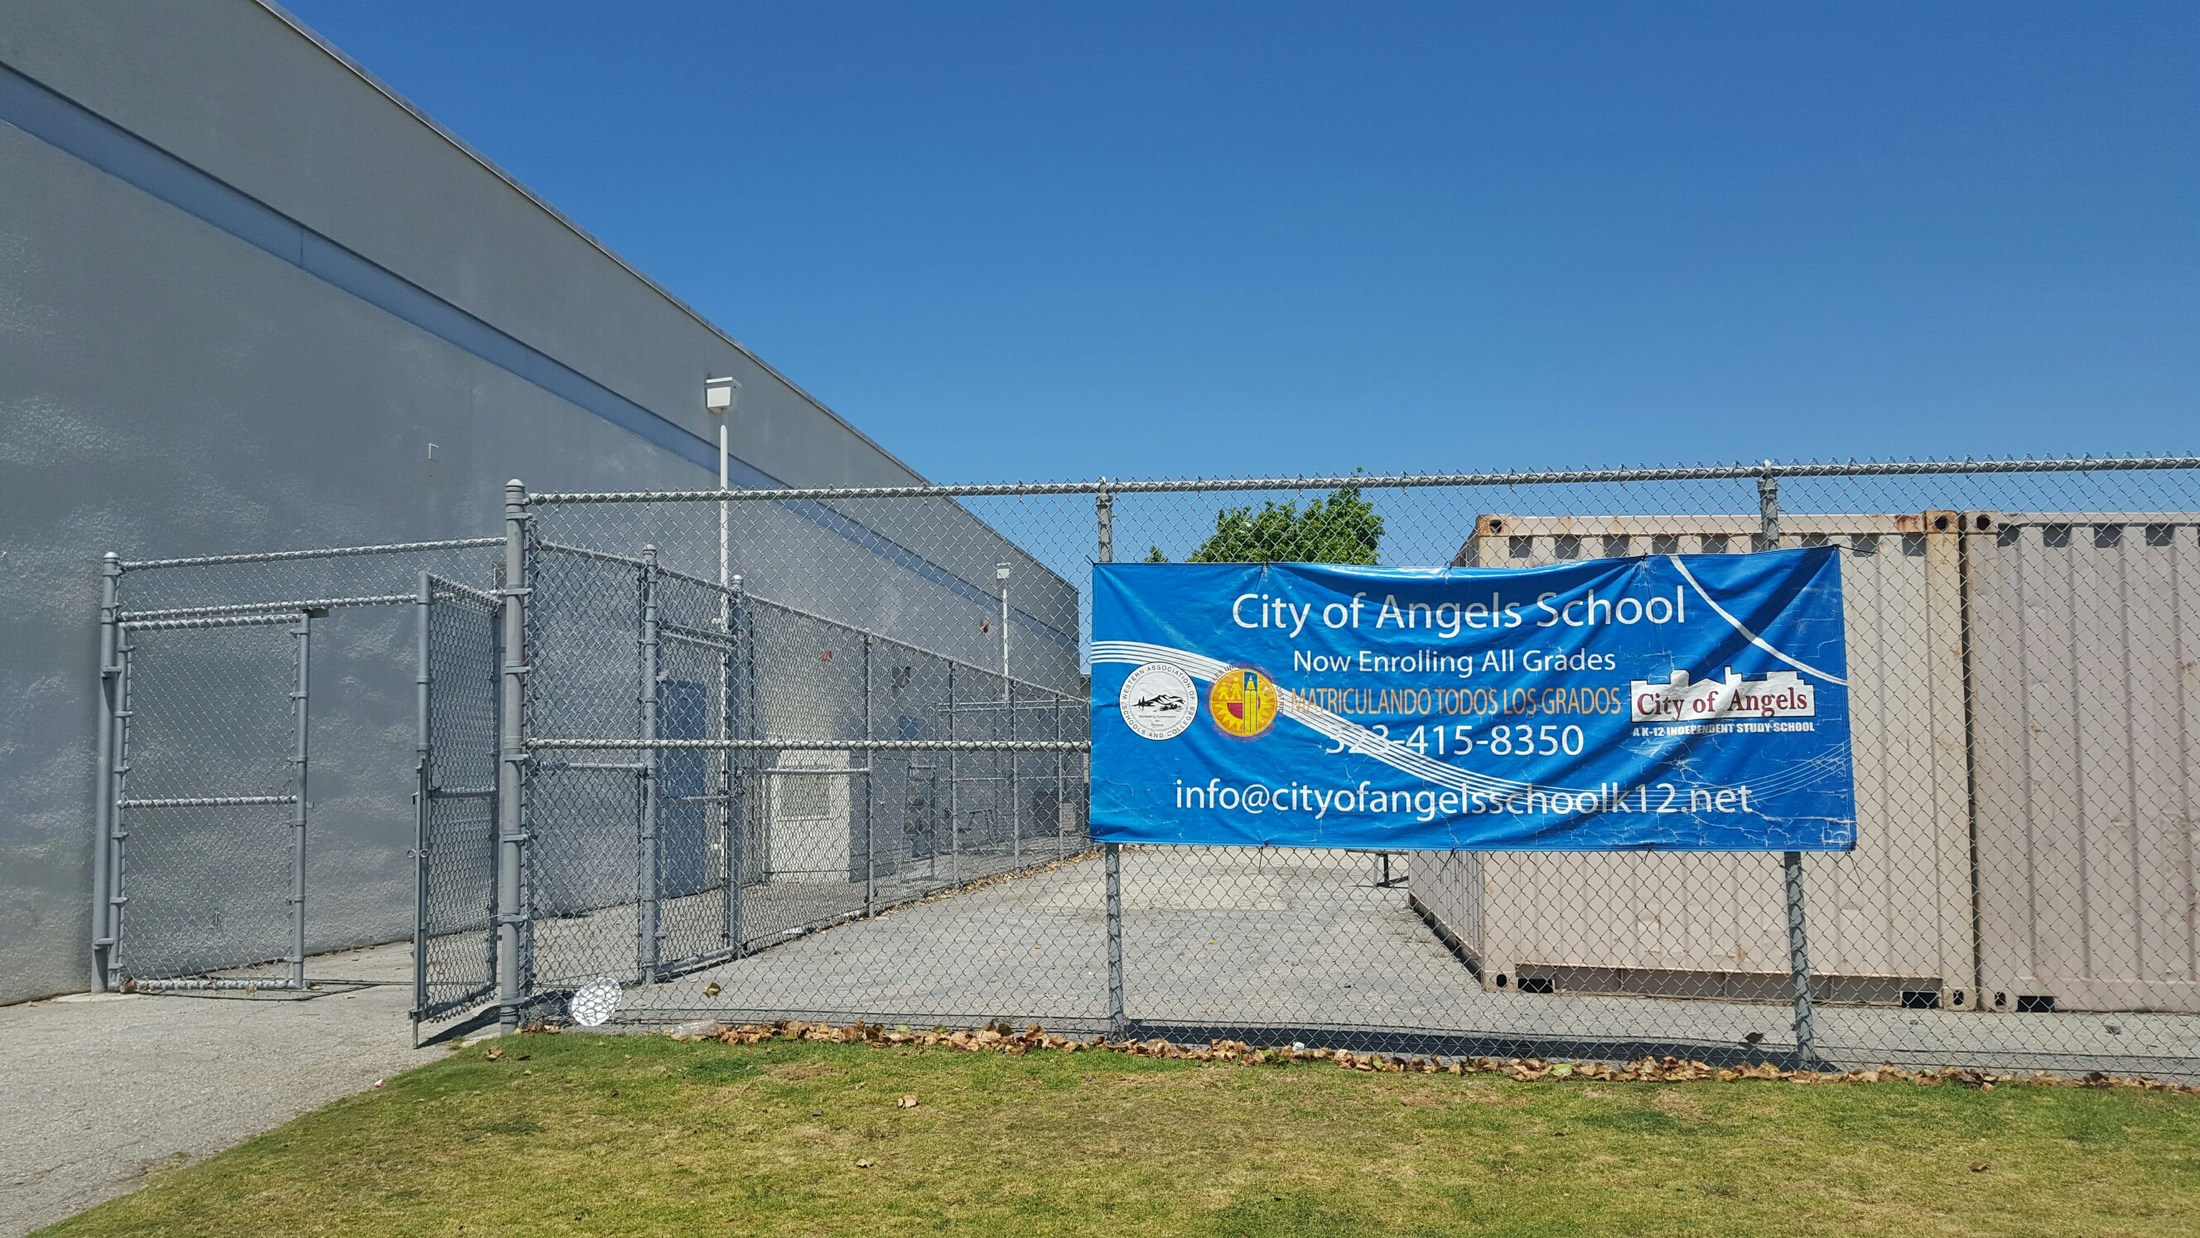 City of Carson - Curtiss Site – South Region – City Of Angels School